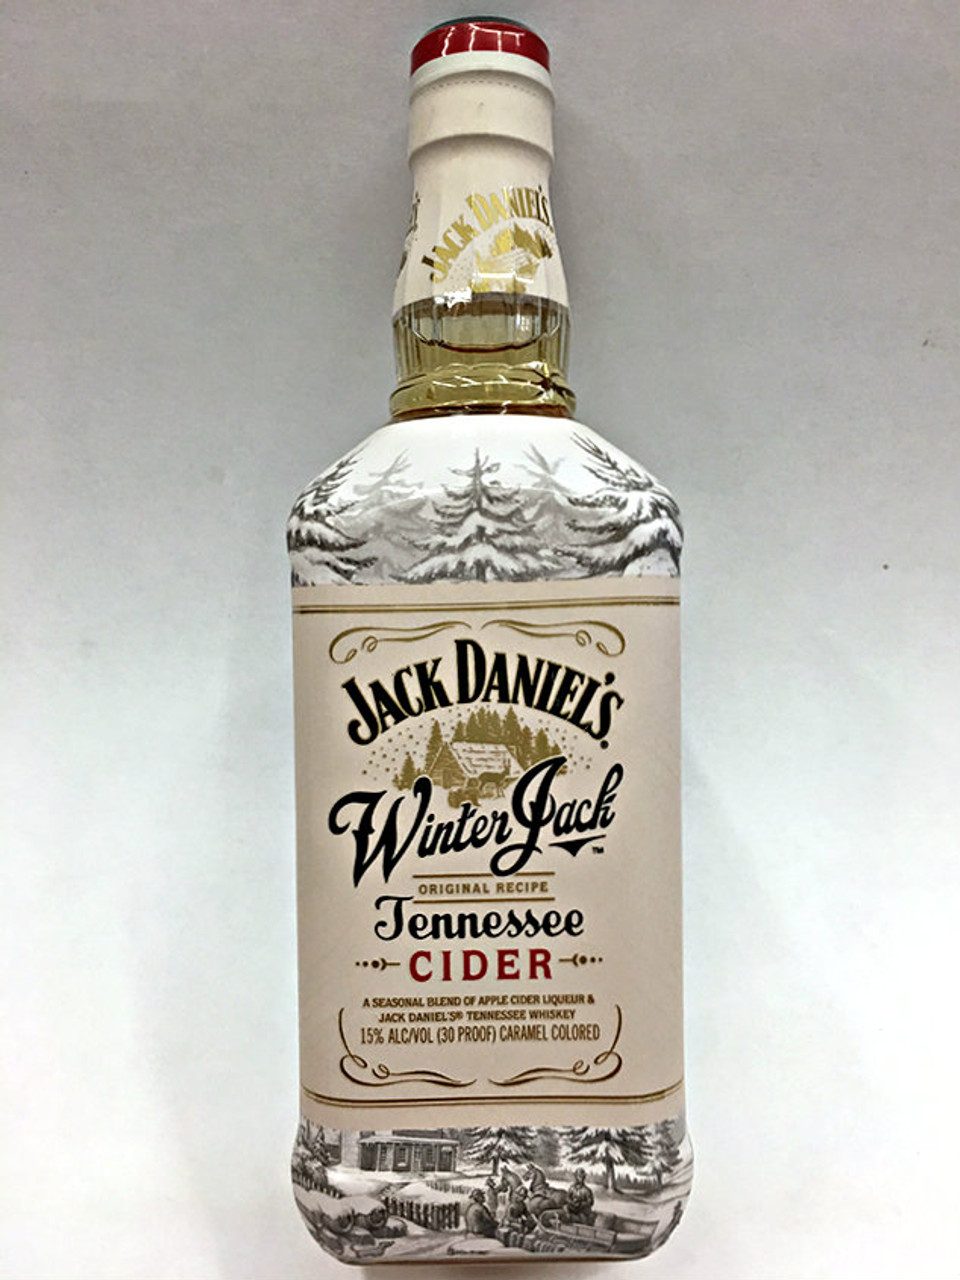 Jack daniels winter jack ingredients